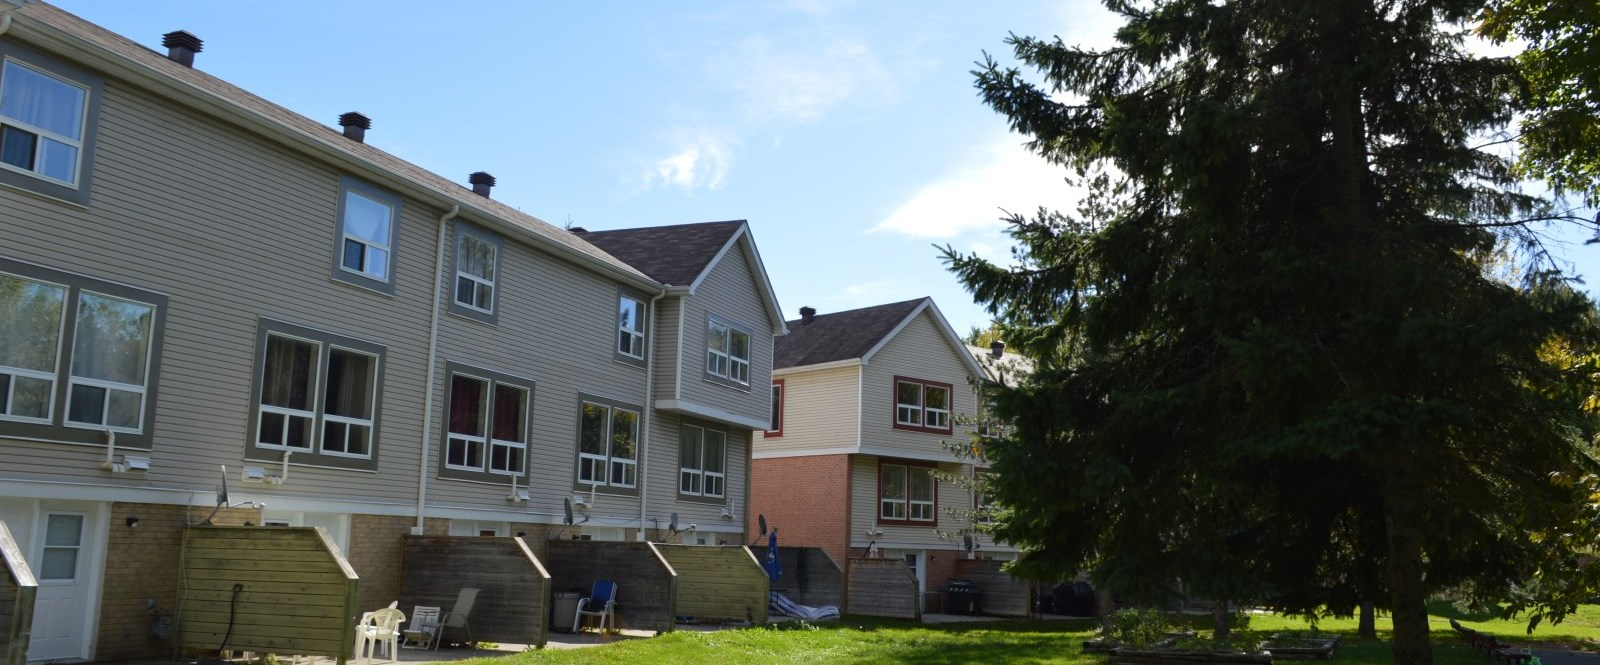 Cornwall Social housing units next to large evergreen tree